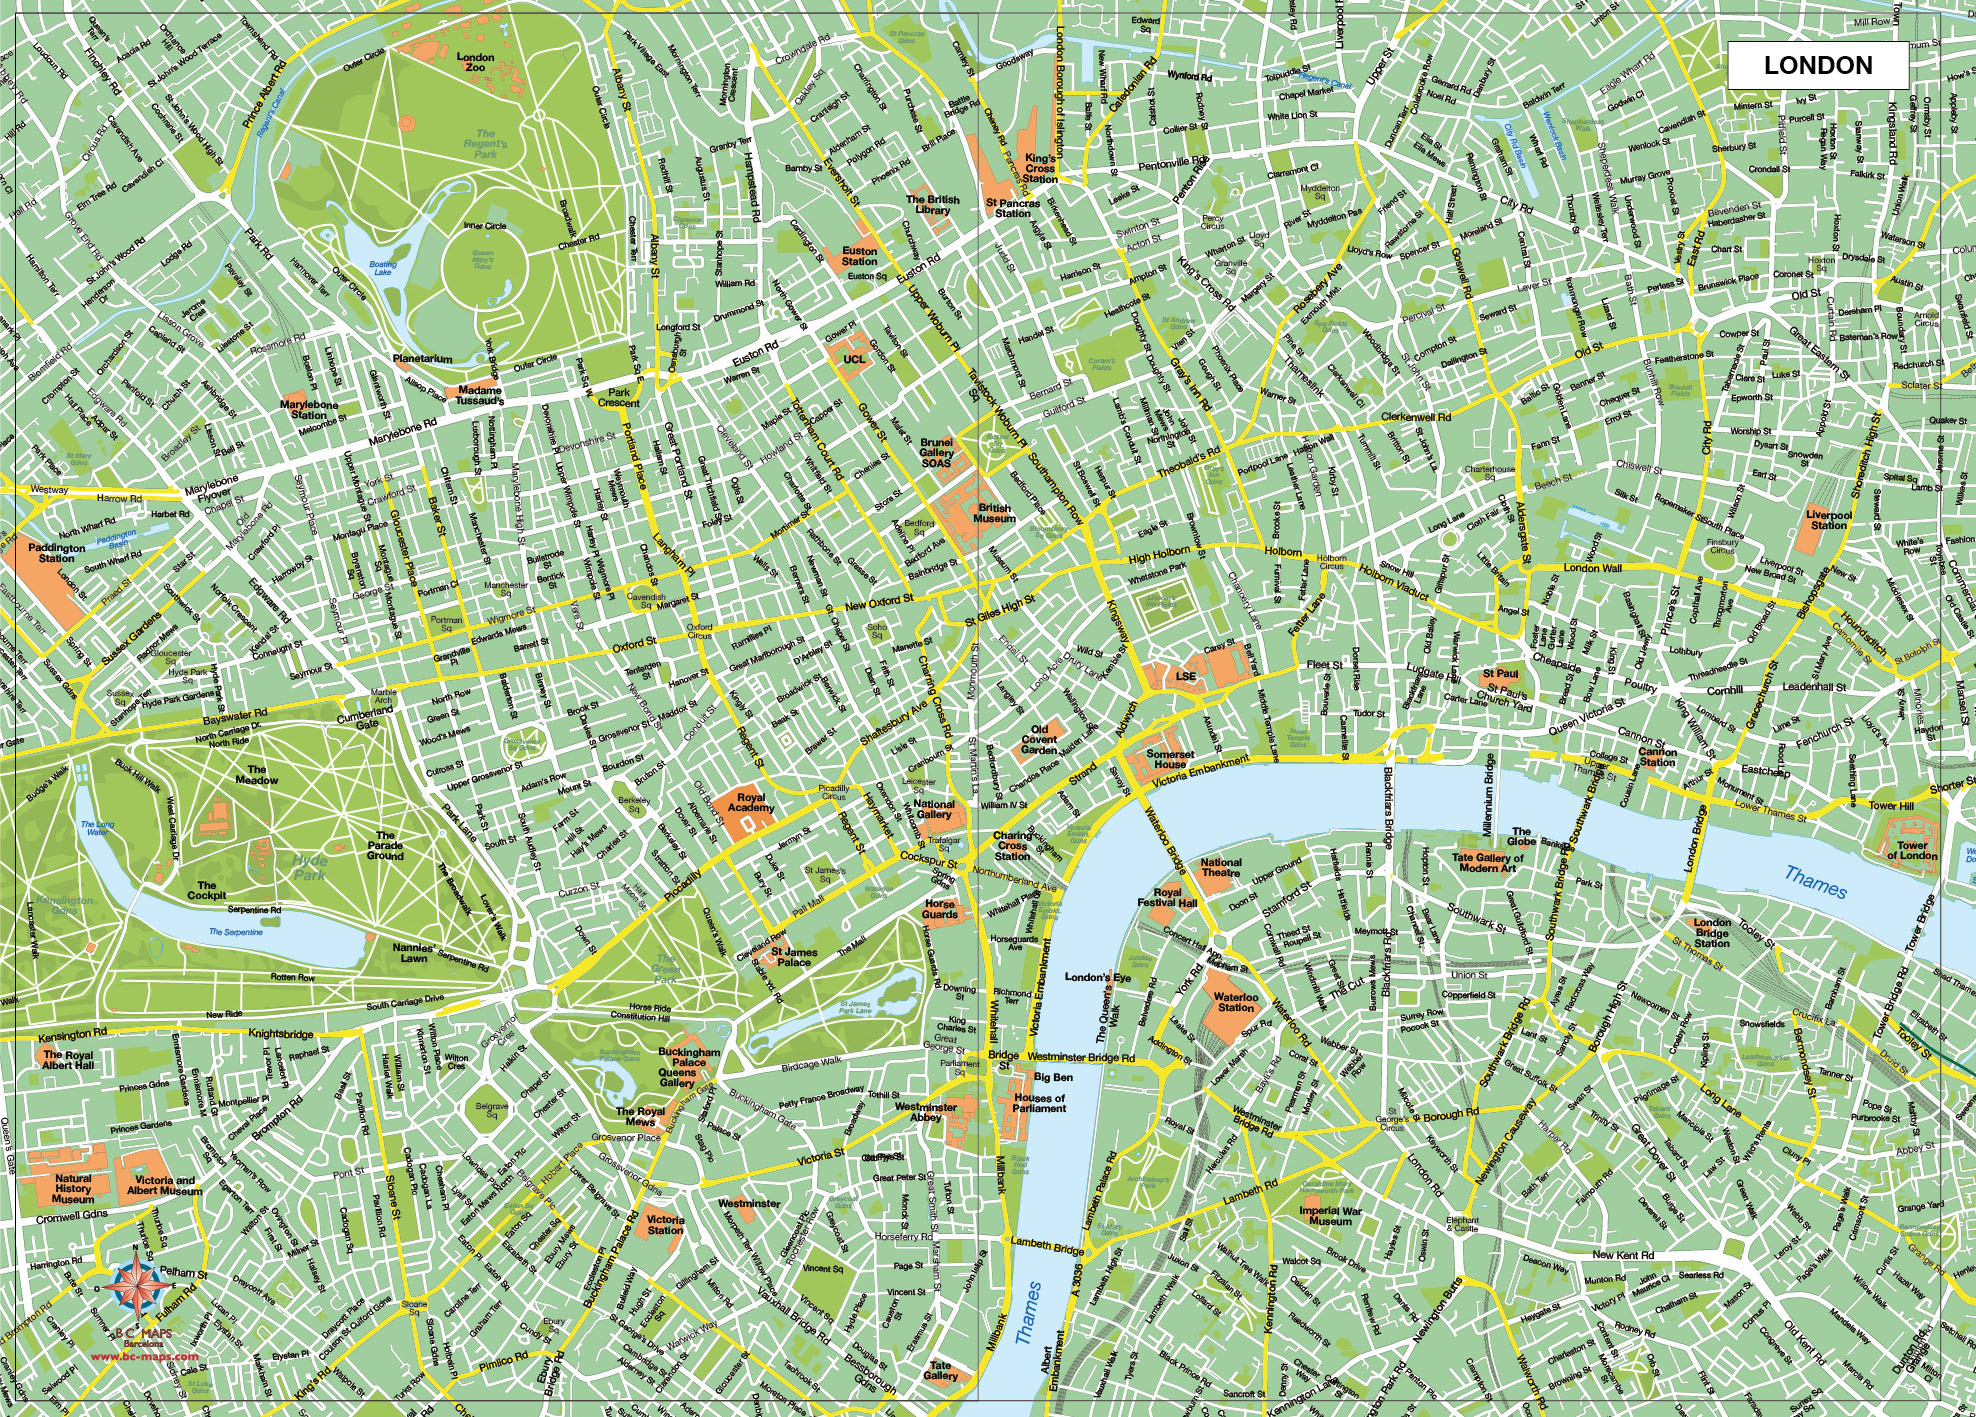 London mapa vectorial illustrator eps